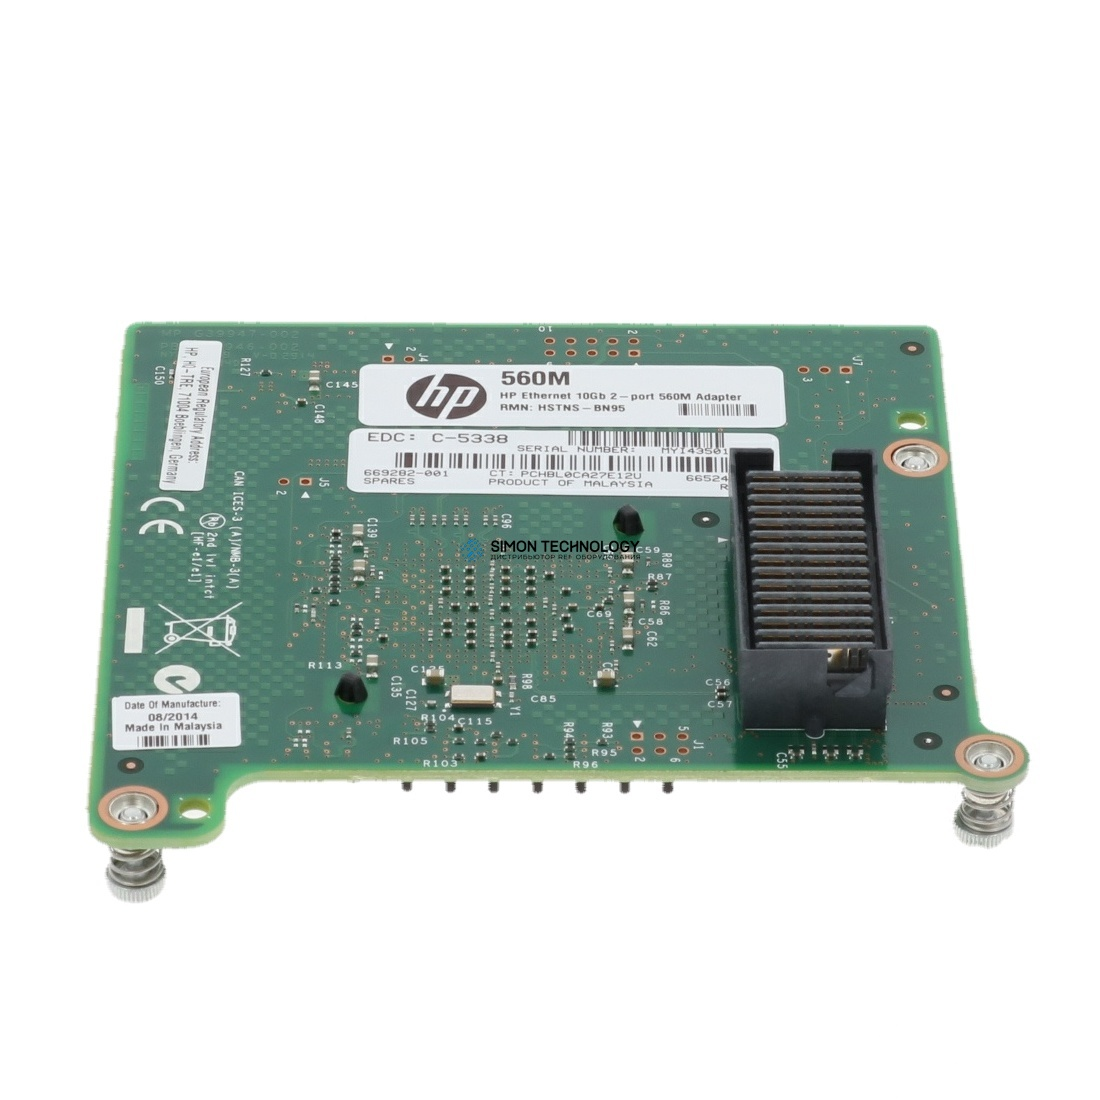 HP Ethernet 10GB 2-Port 560M Adapter (669282-001)